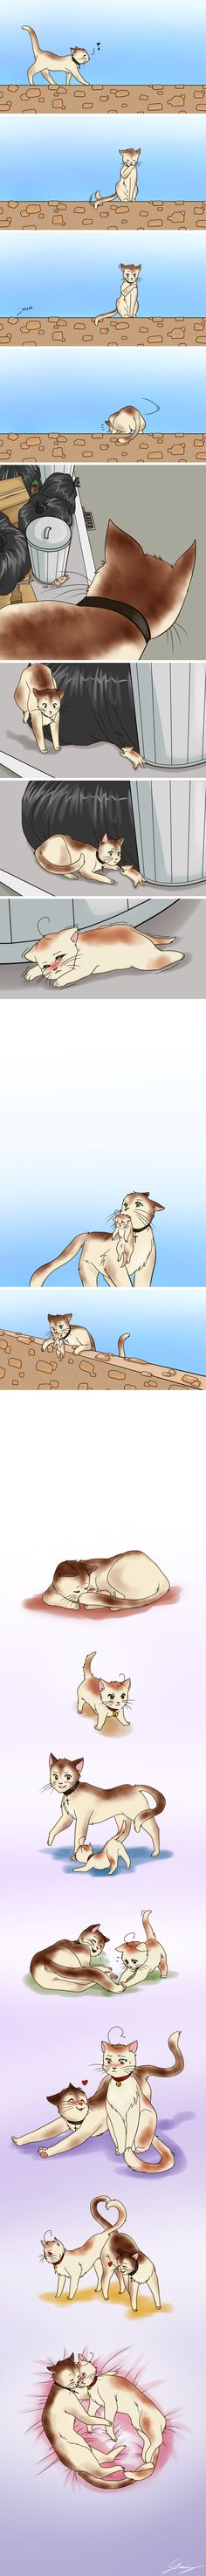 A Cat's Life by x-Lilou-chan-x on deviantART. Neko Hetalia Spain x Romano